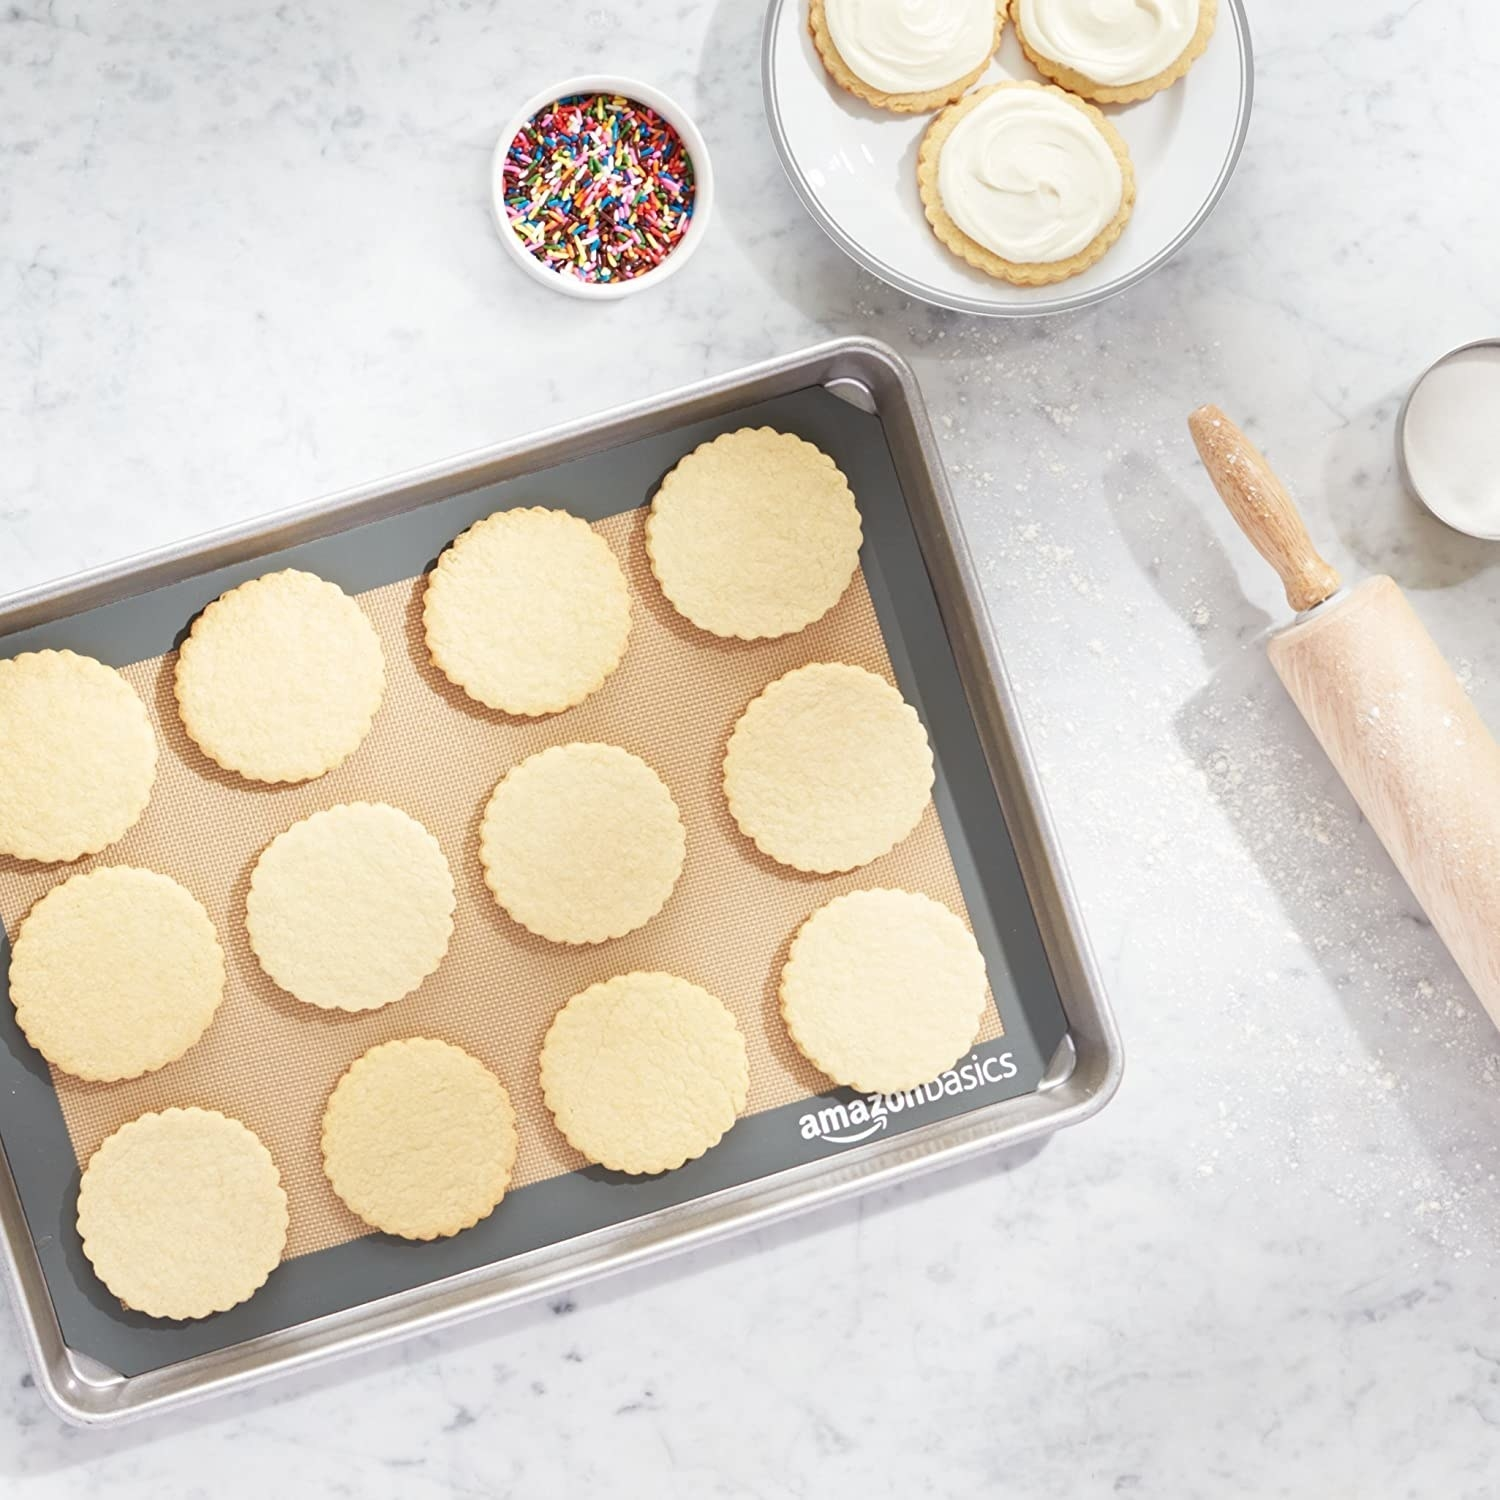 Cookies on a silicone baking mat